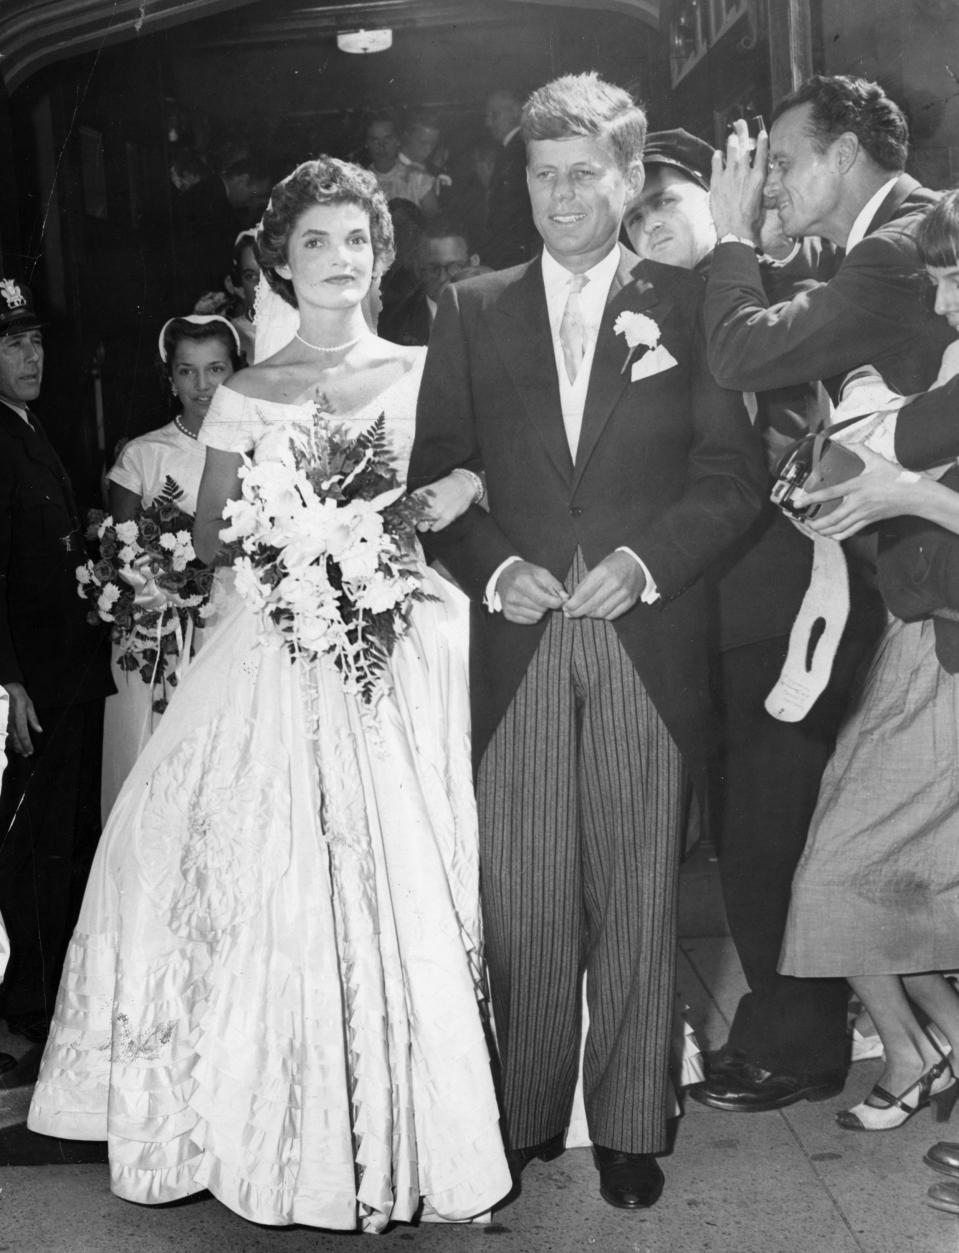 NEWPORT, RI - SEPTEMBER 12: Jackie Kennedy and John F. Kennedy walk out of St. Mary's Church in Newport, R.I. after their wedding ceremony, Sept. 12, 1953.  (Photo by Charles McCormick /The Boston Globe via Getty Images)